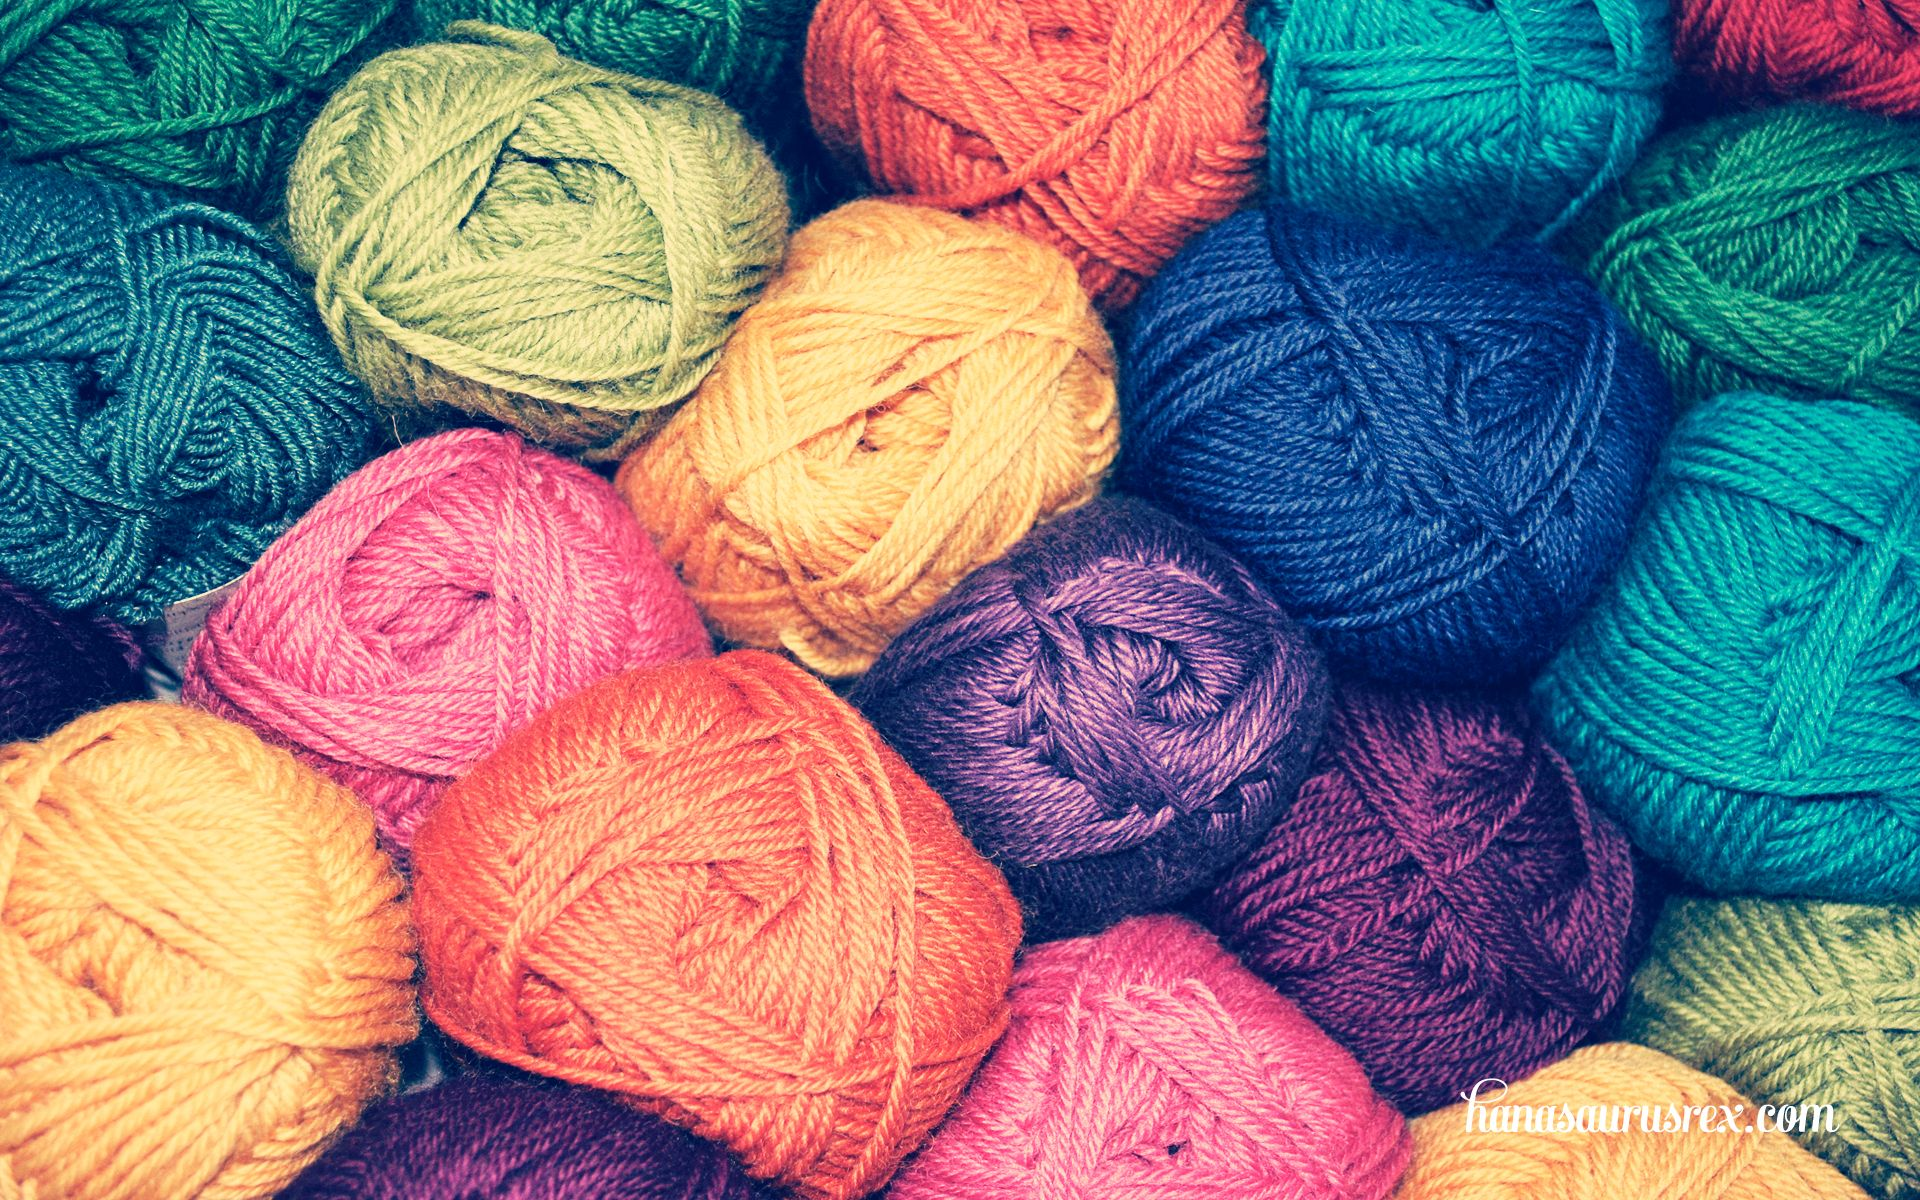 Crochet Yarn : Crochet Fridays - Crocheters in Central CT (Plainville, CT) Meetup